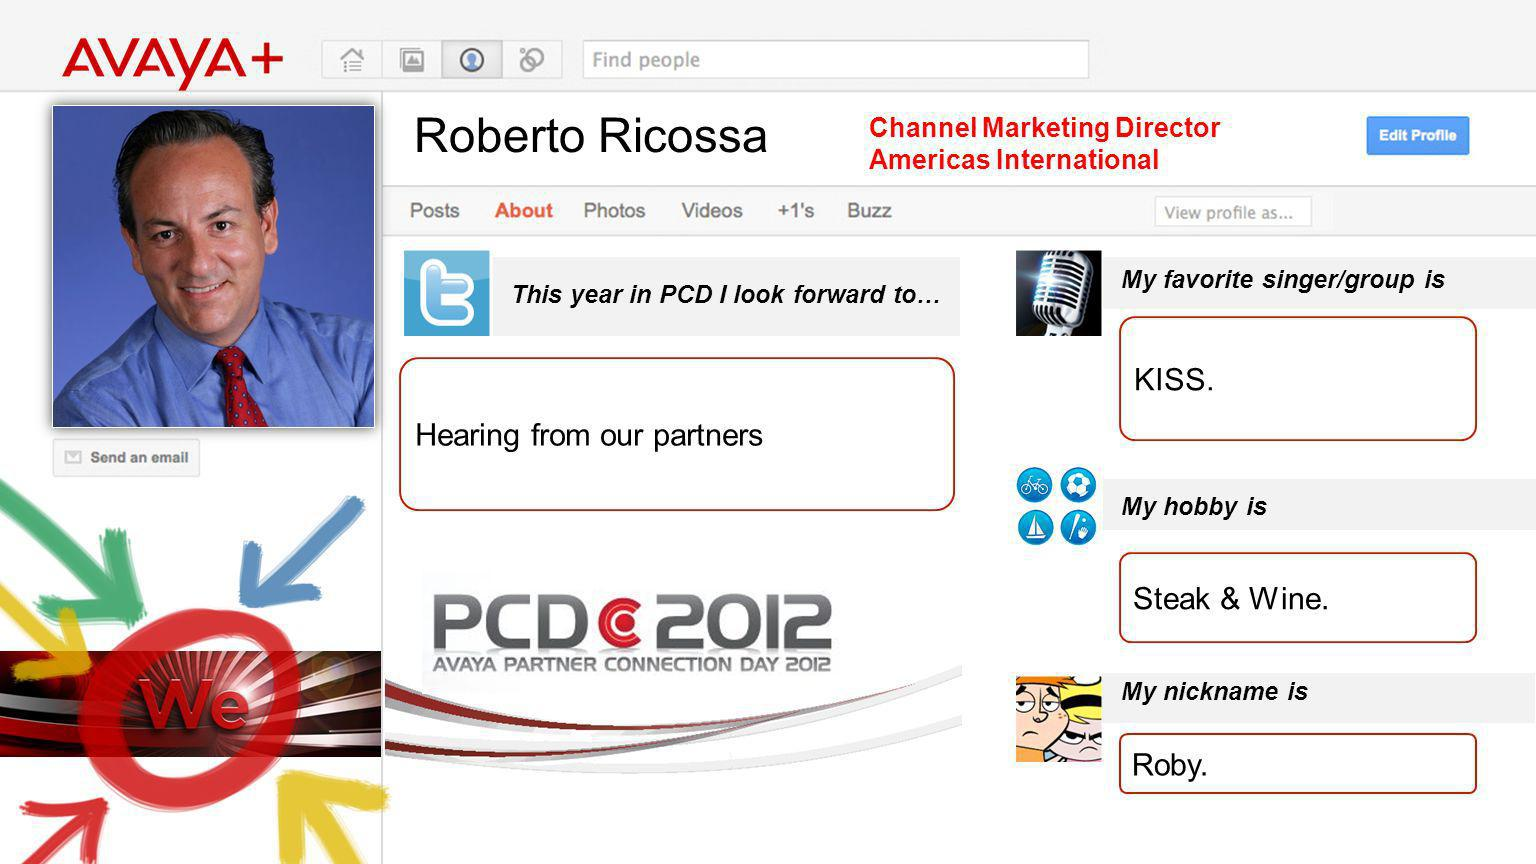 Roberto Ricossa This year in PCD I look forward to… Channel Marketing Director Americas International Hearing from our partners My favorite singer/group is My hobby is My nickname is KISS.